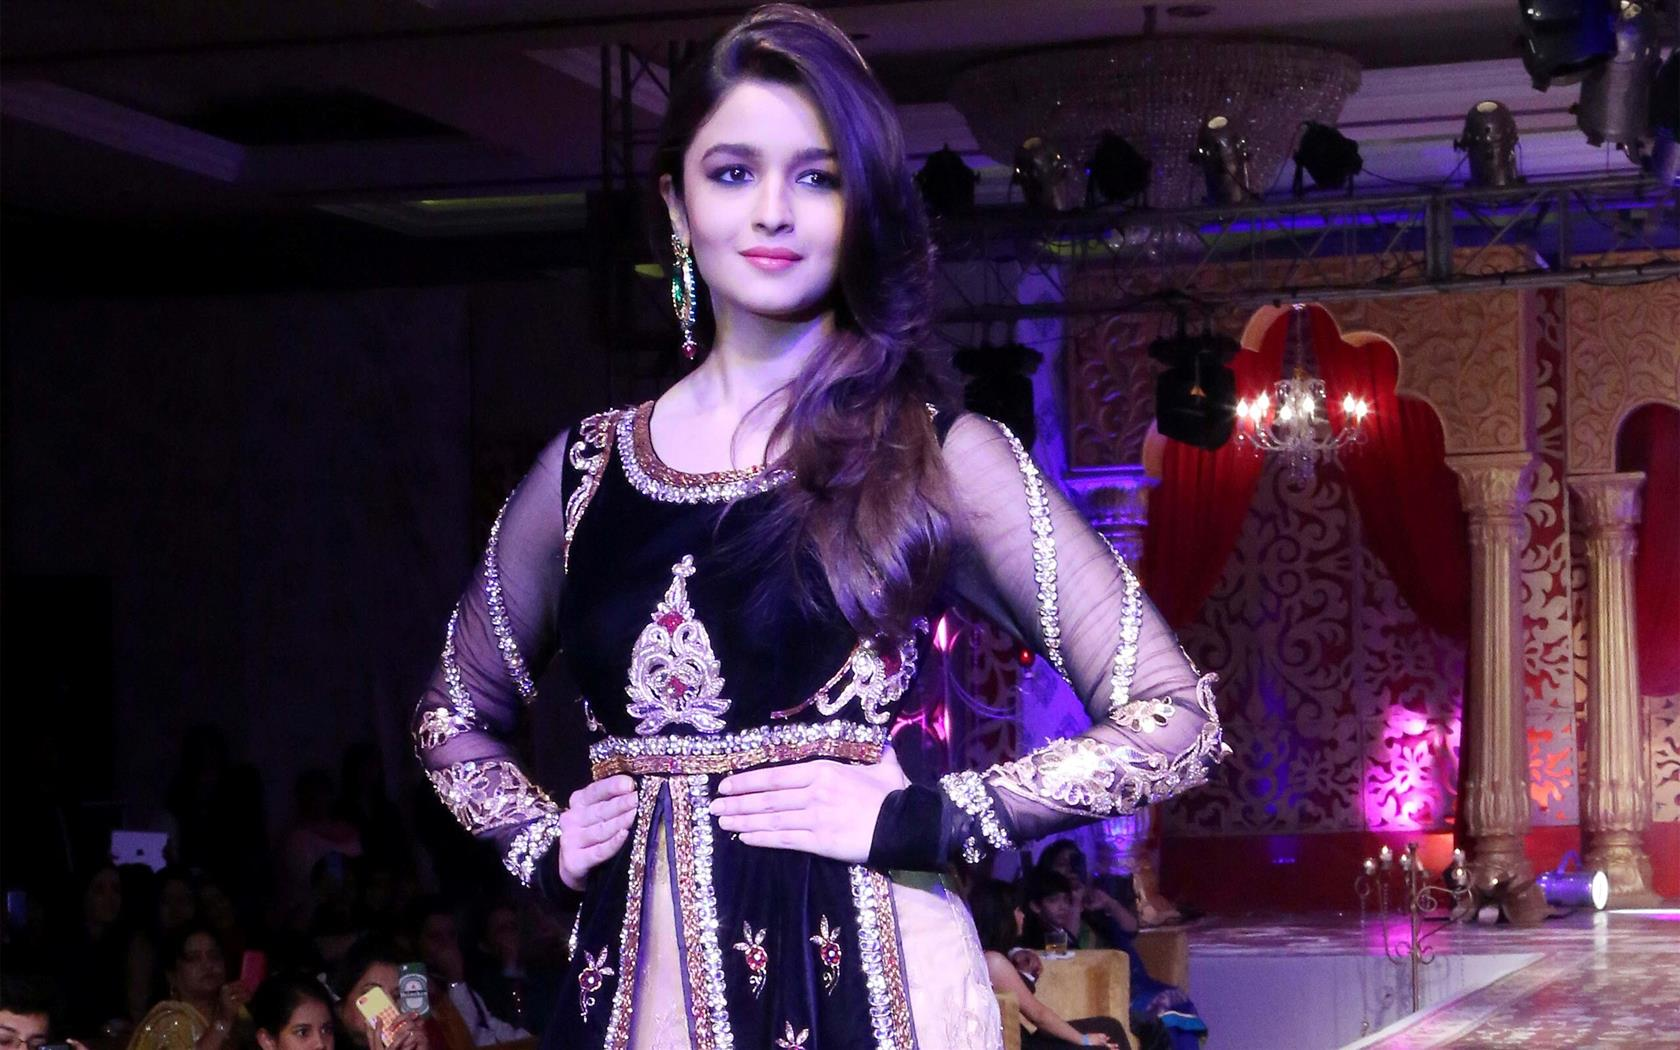 1680x1050 Most Famous Beautiful Actress Alia Bhatt in New Latest Design Dress on Ramp Walk Photos